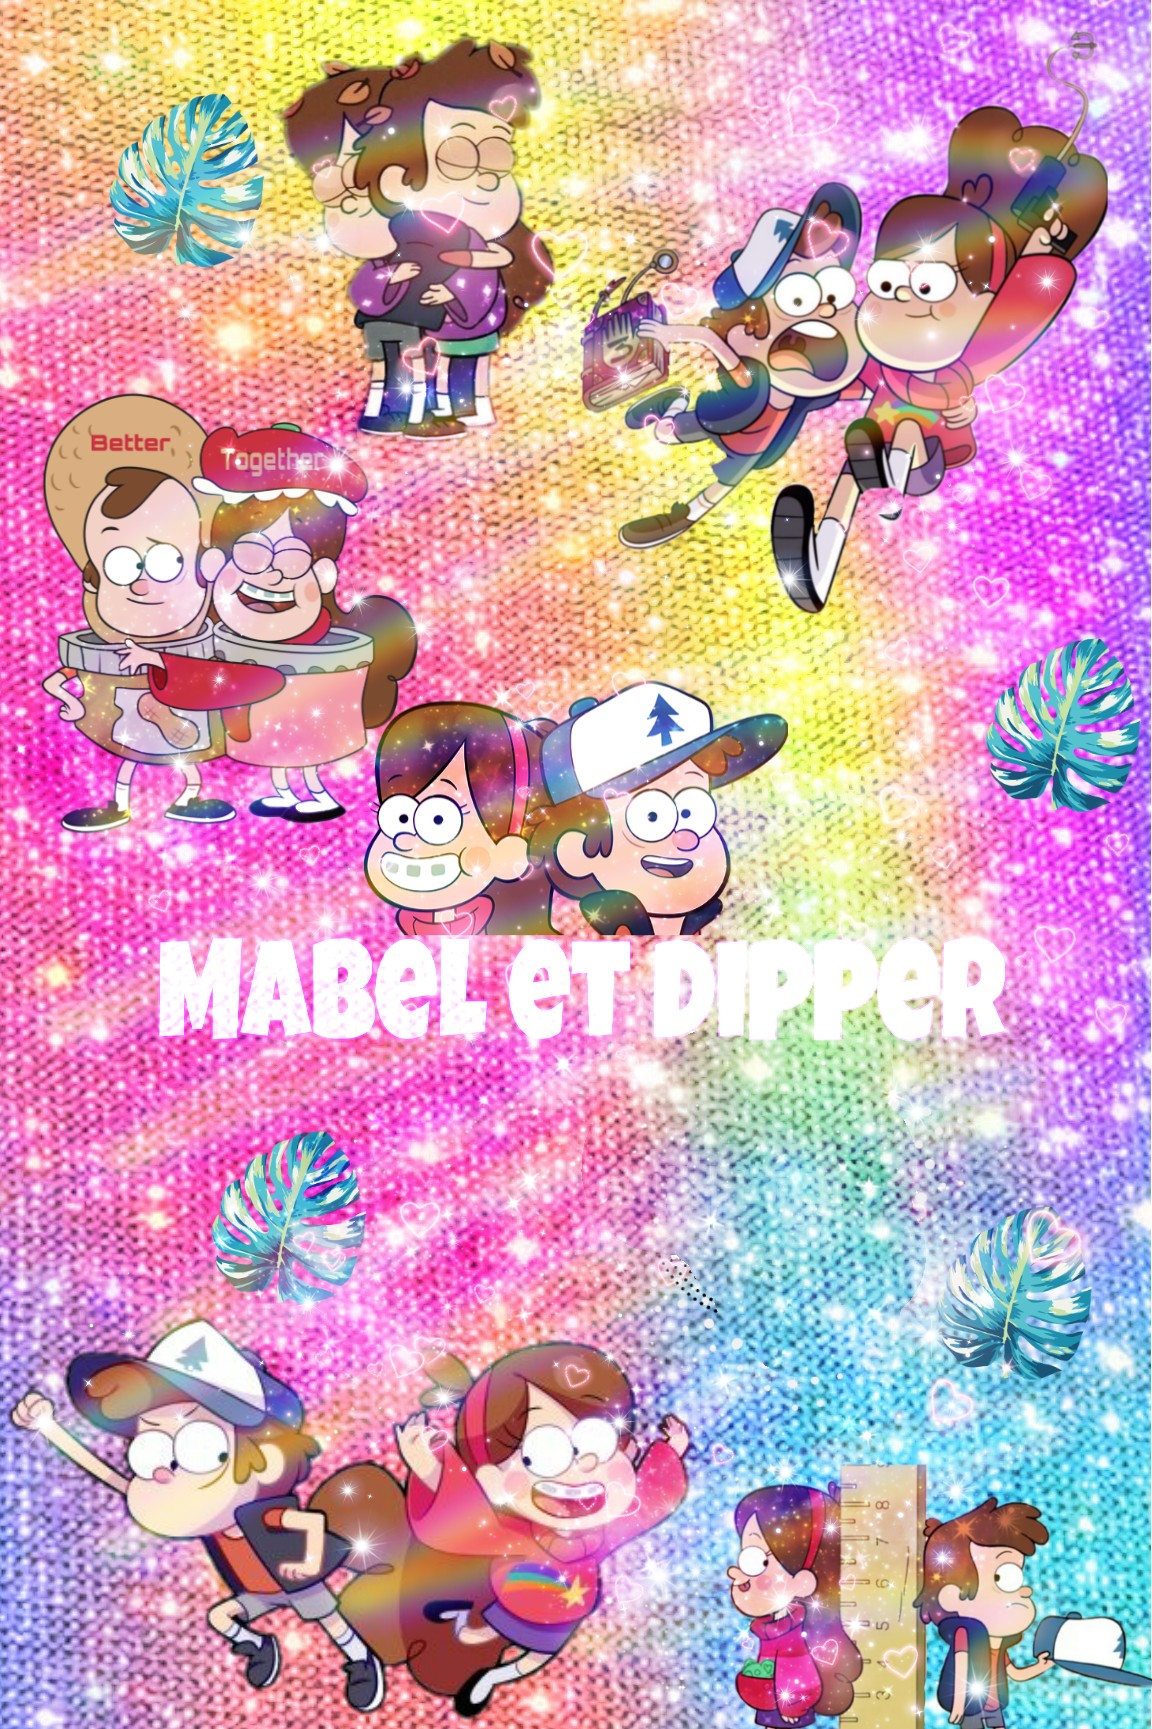 Mabel and waddle